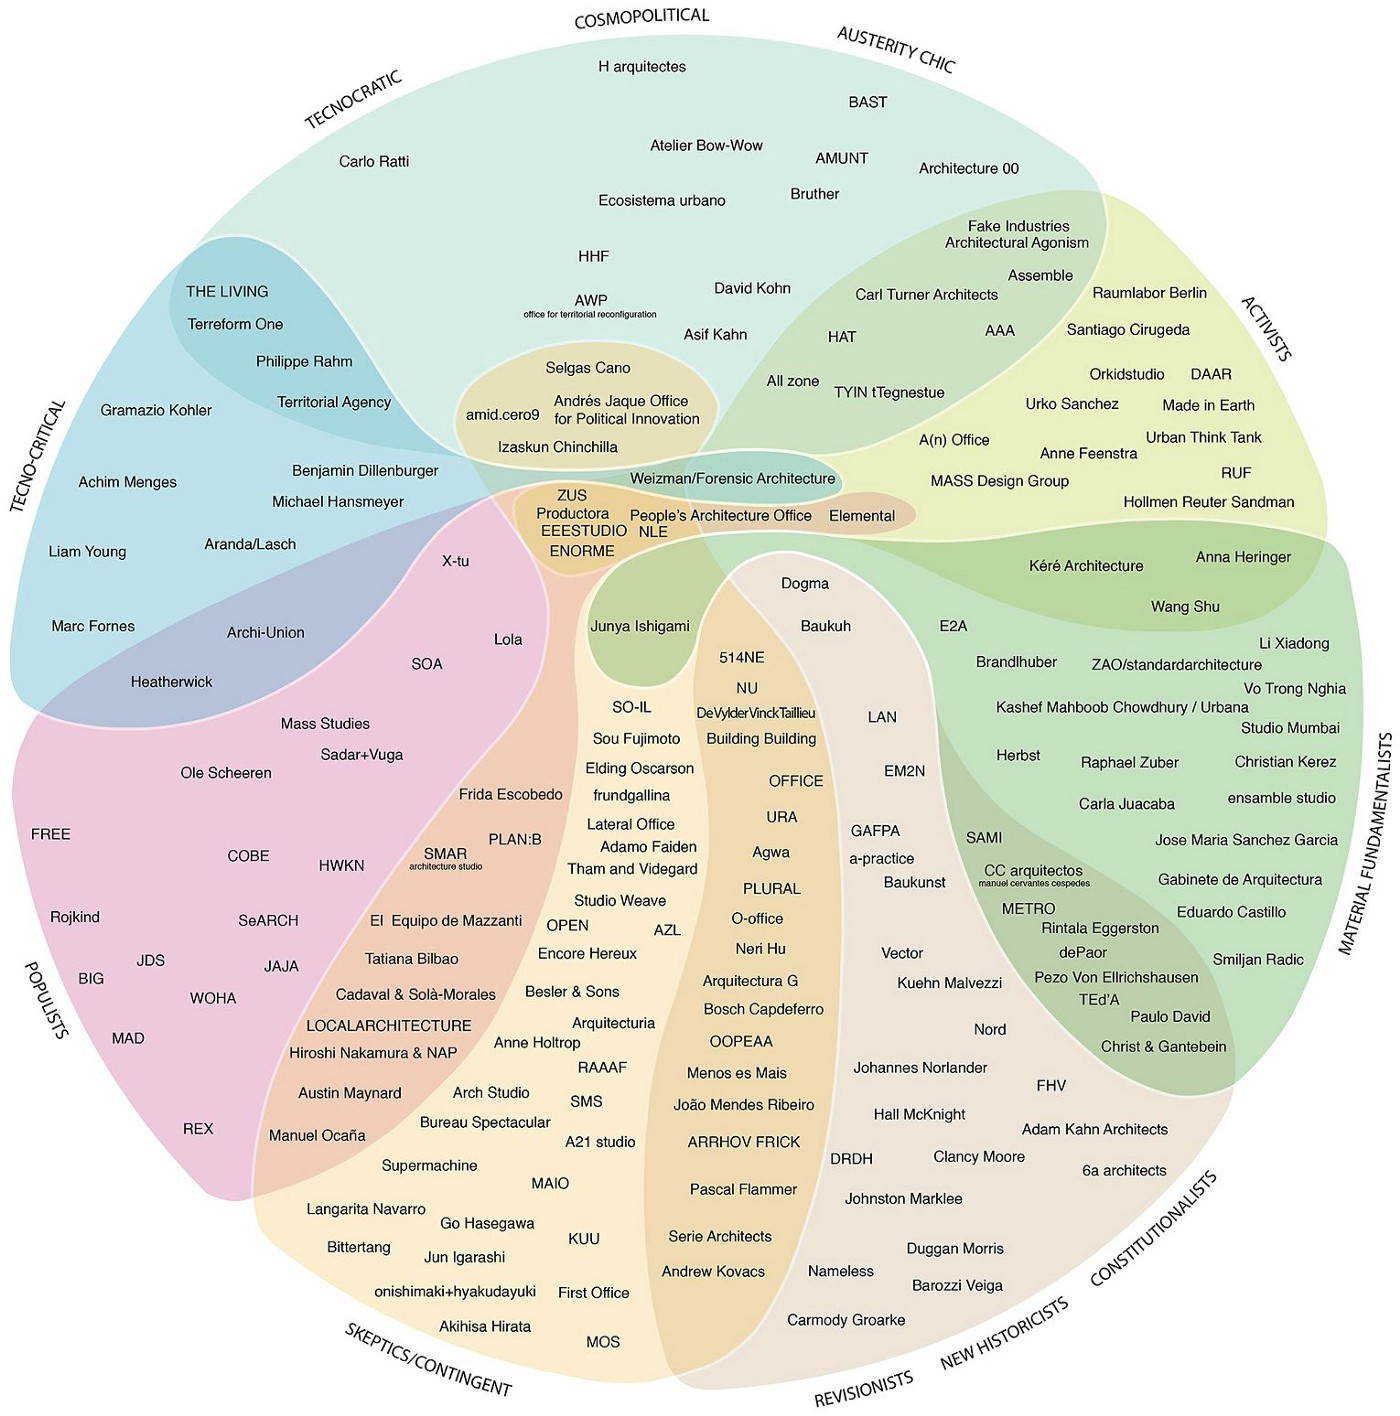 A Taxonomy of Emerging Architecture in One Diagram, by Alejandro Zaera-Polo & Guillermo Fernandez Abascal